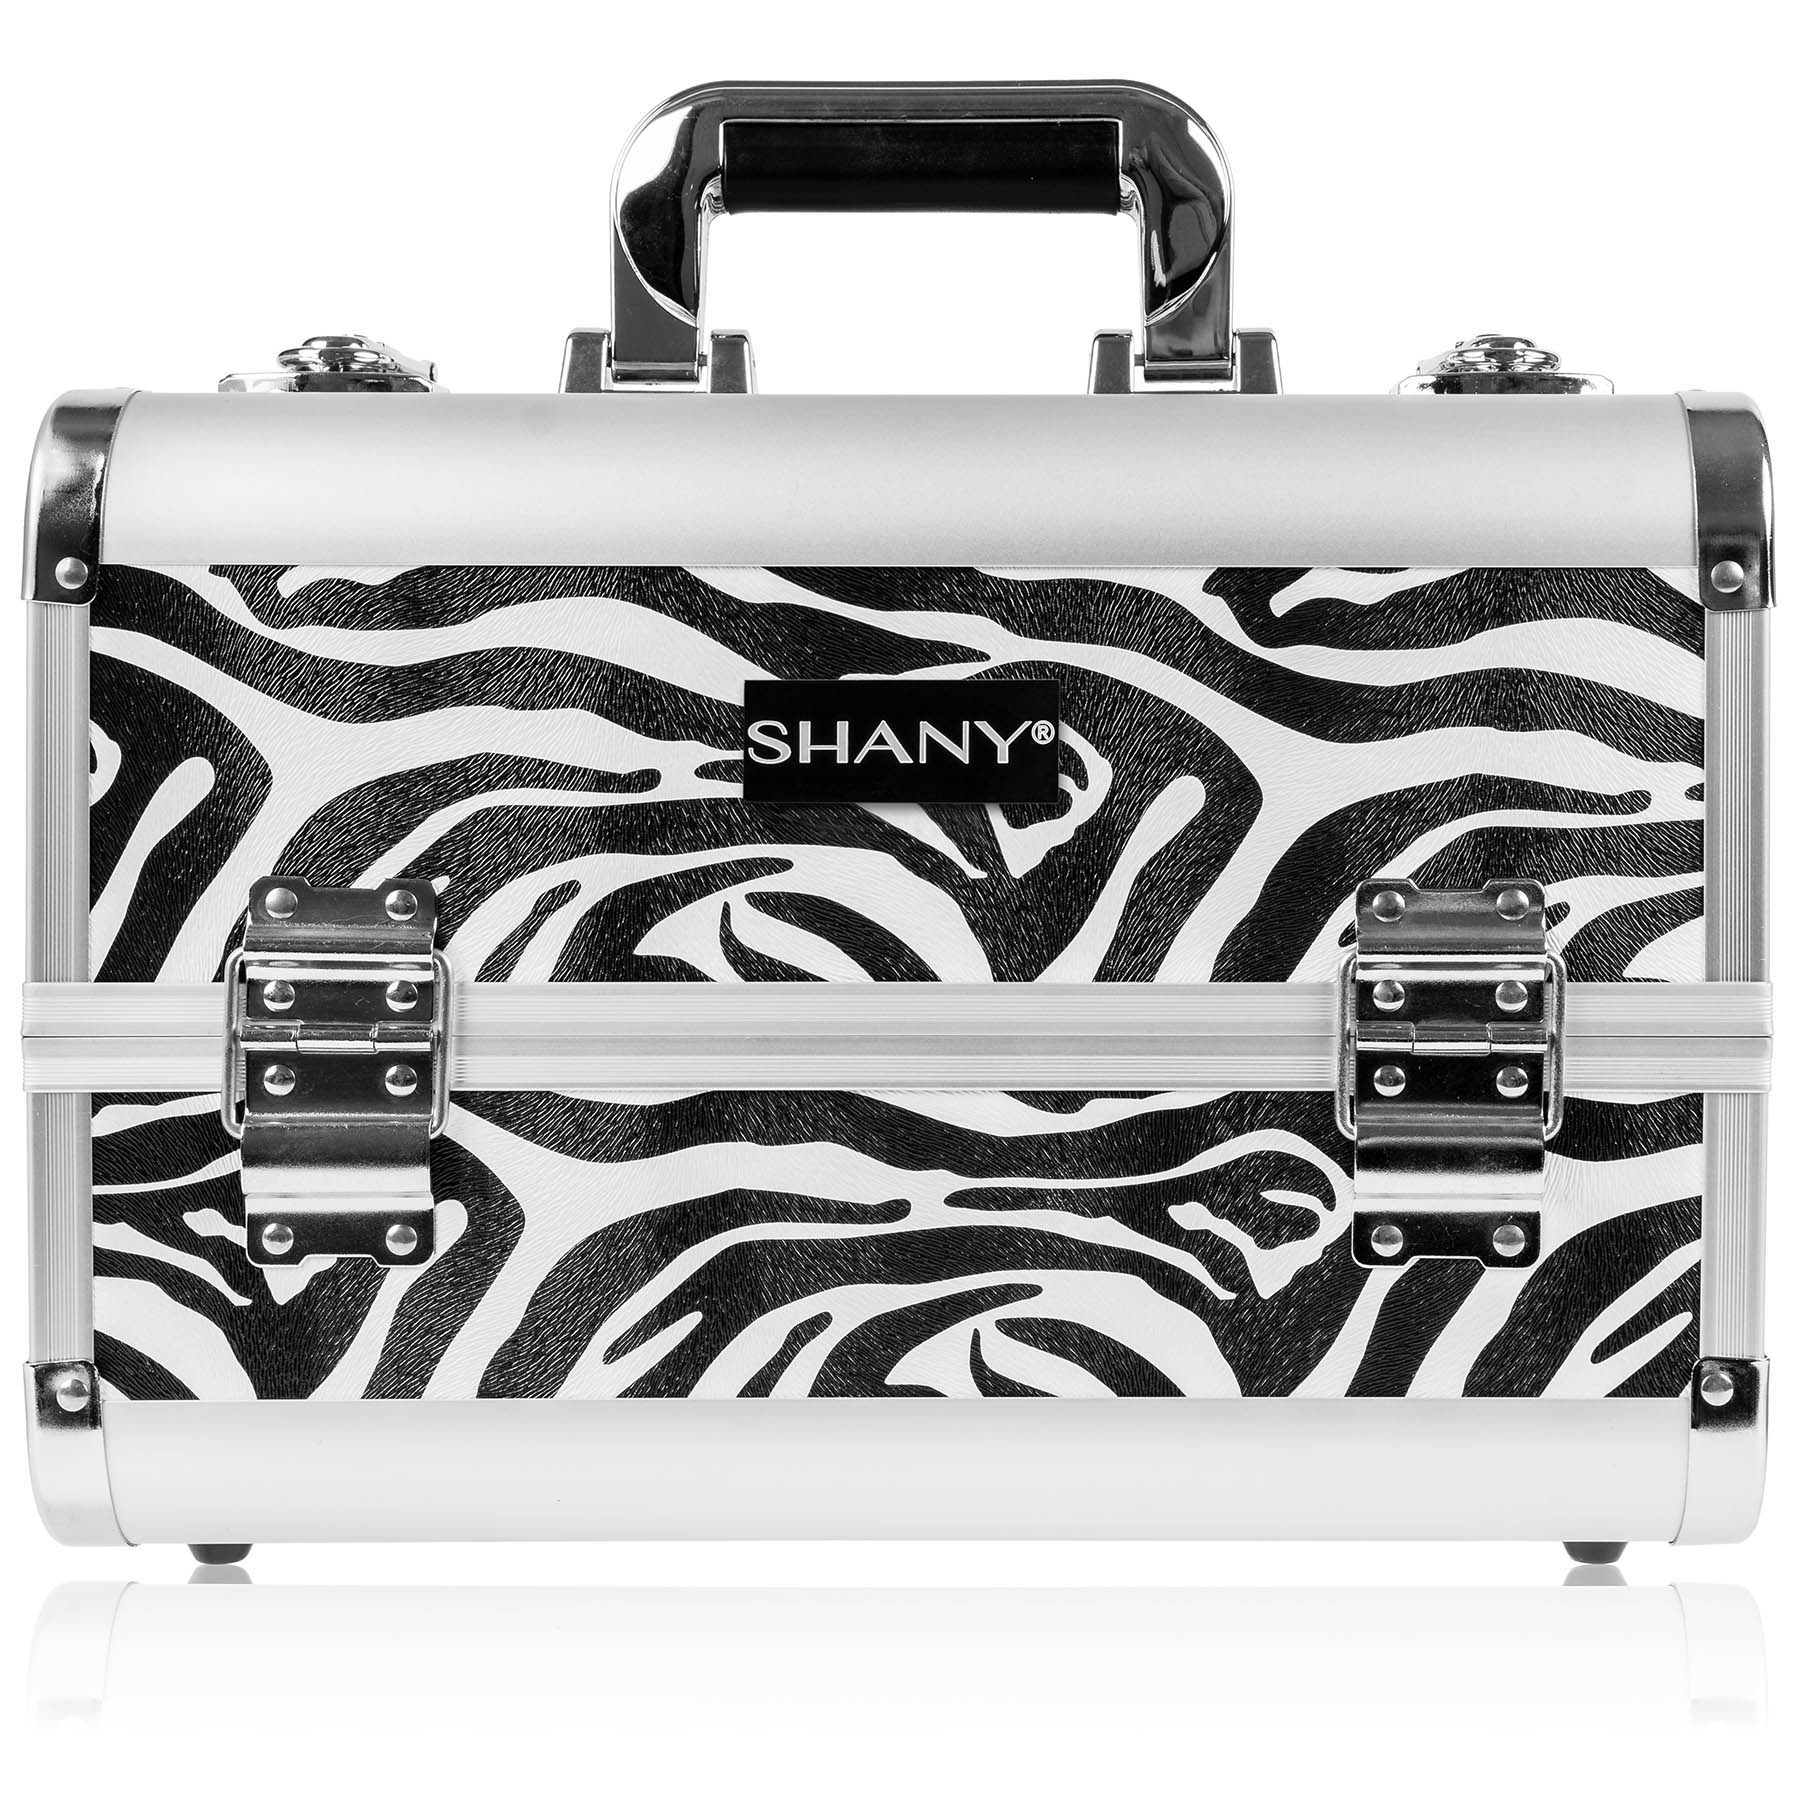 SHANY-Fantasy-Collection-Makeup-Artists-Cosmetics-Train-Case miniature 72